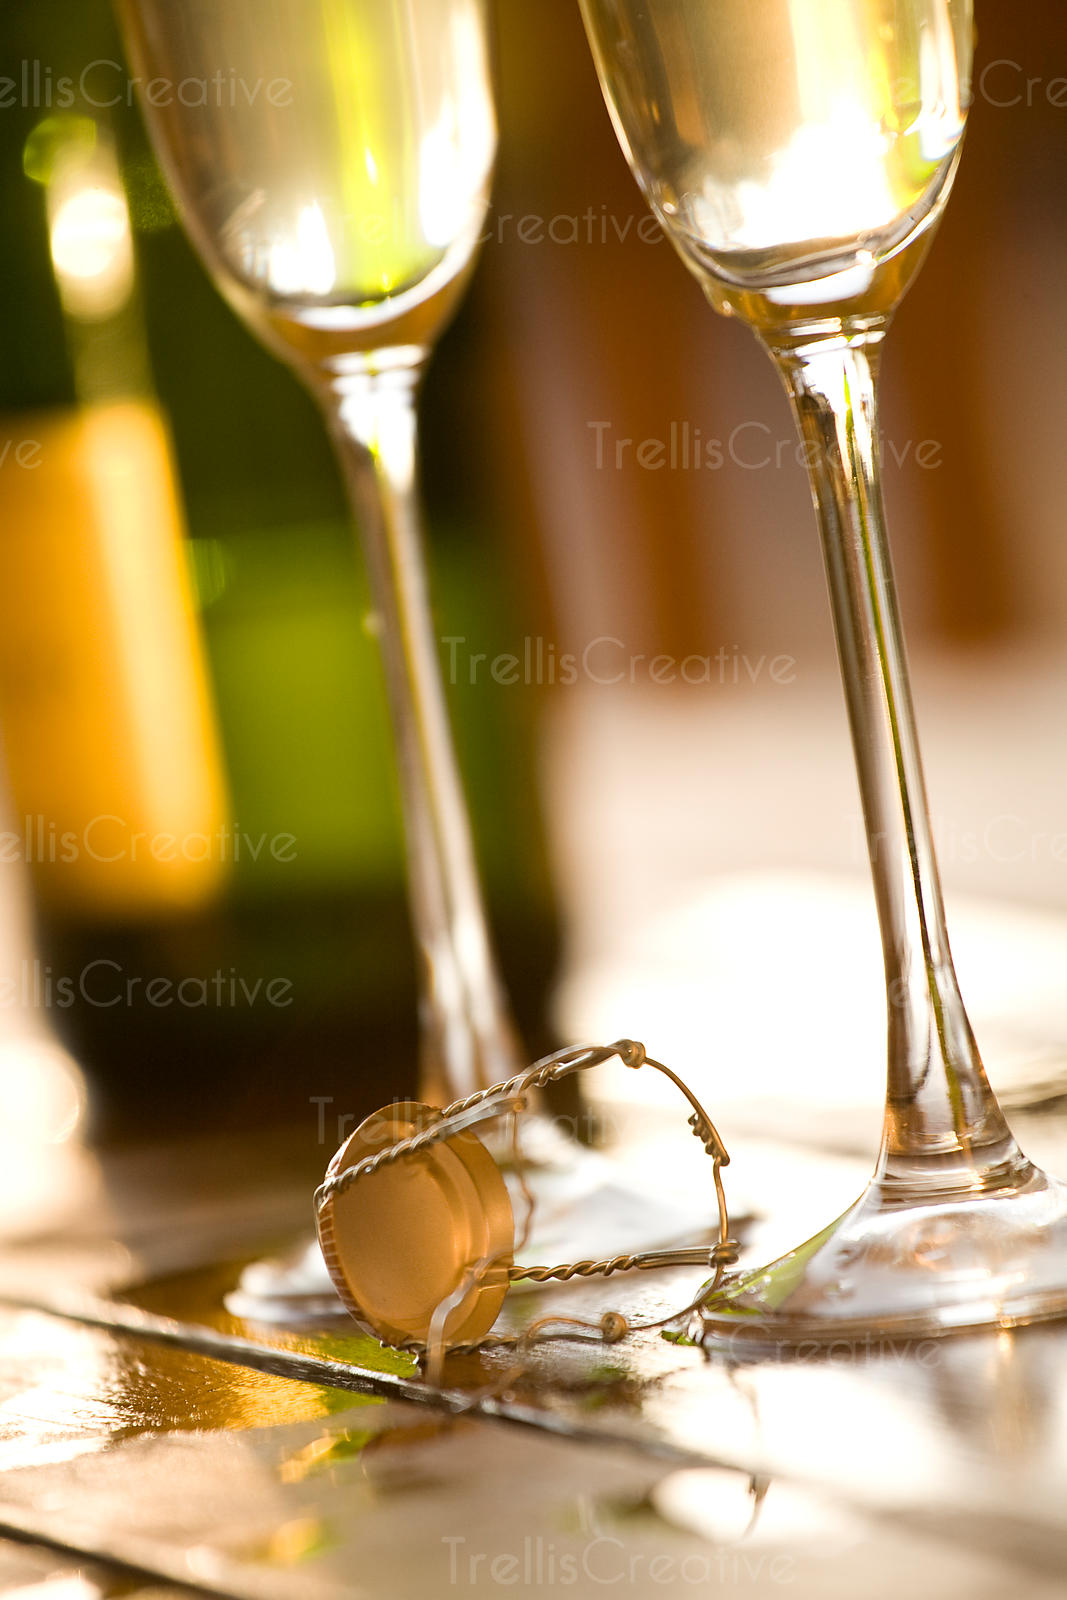 Close-up of two champagne flutes filled with sparkling wine